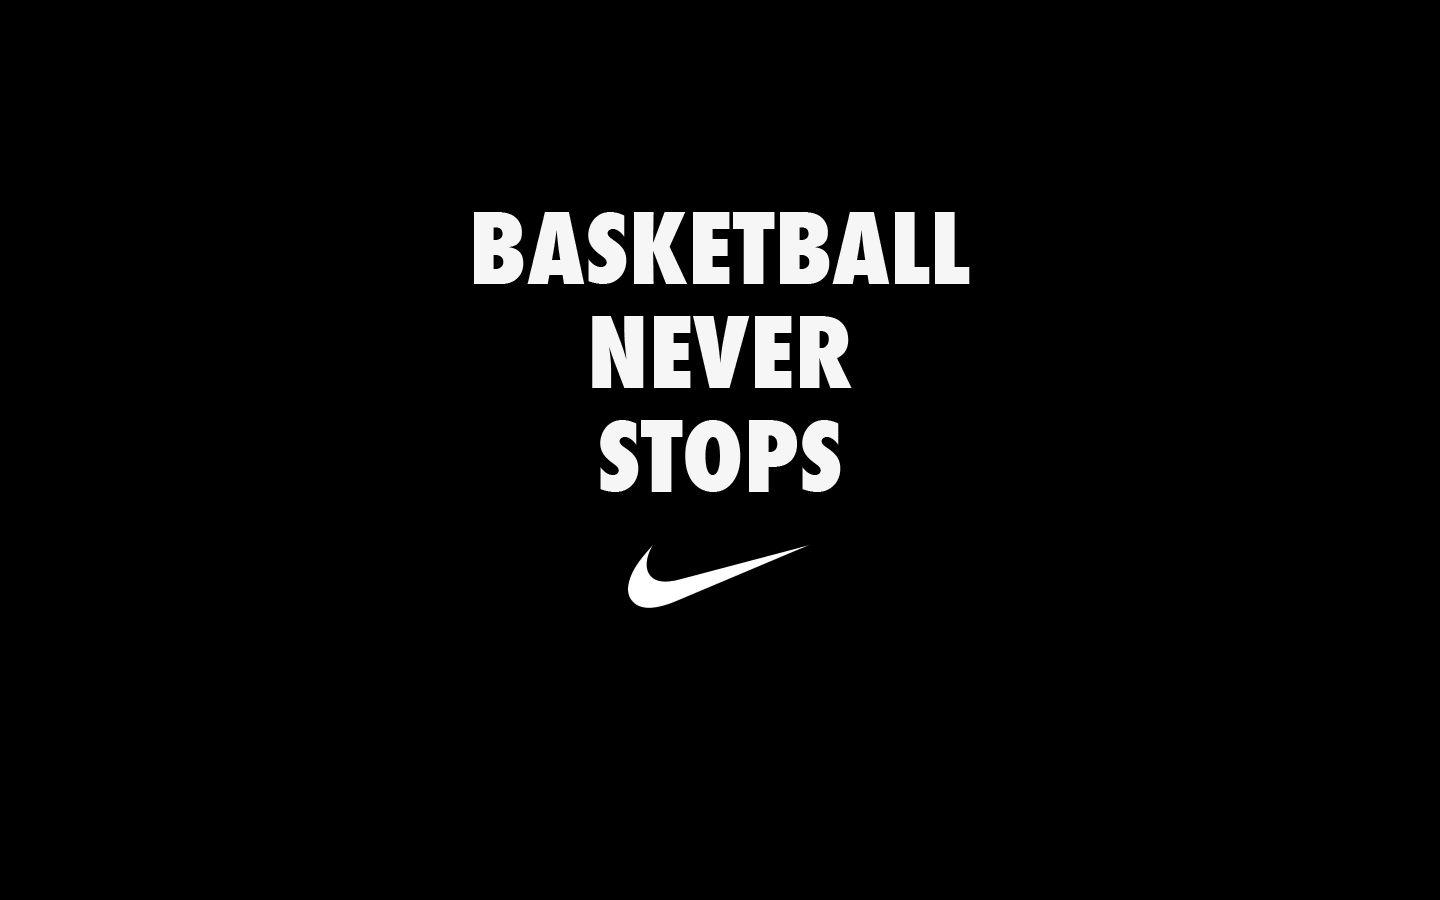 Basketball Quotes Wallpaper – A Great Way to Spice Up Any Room